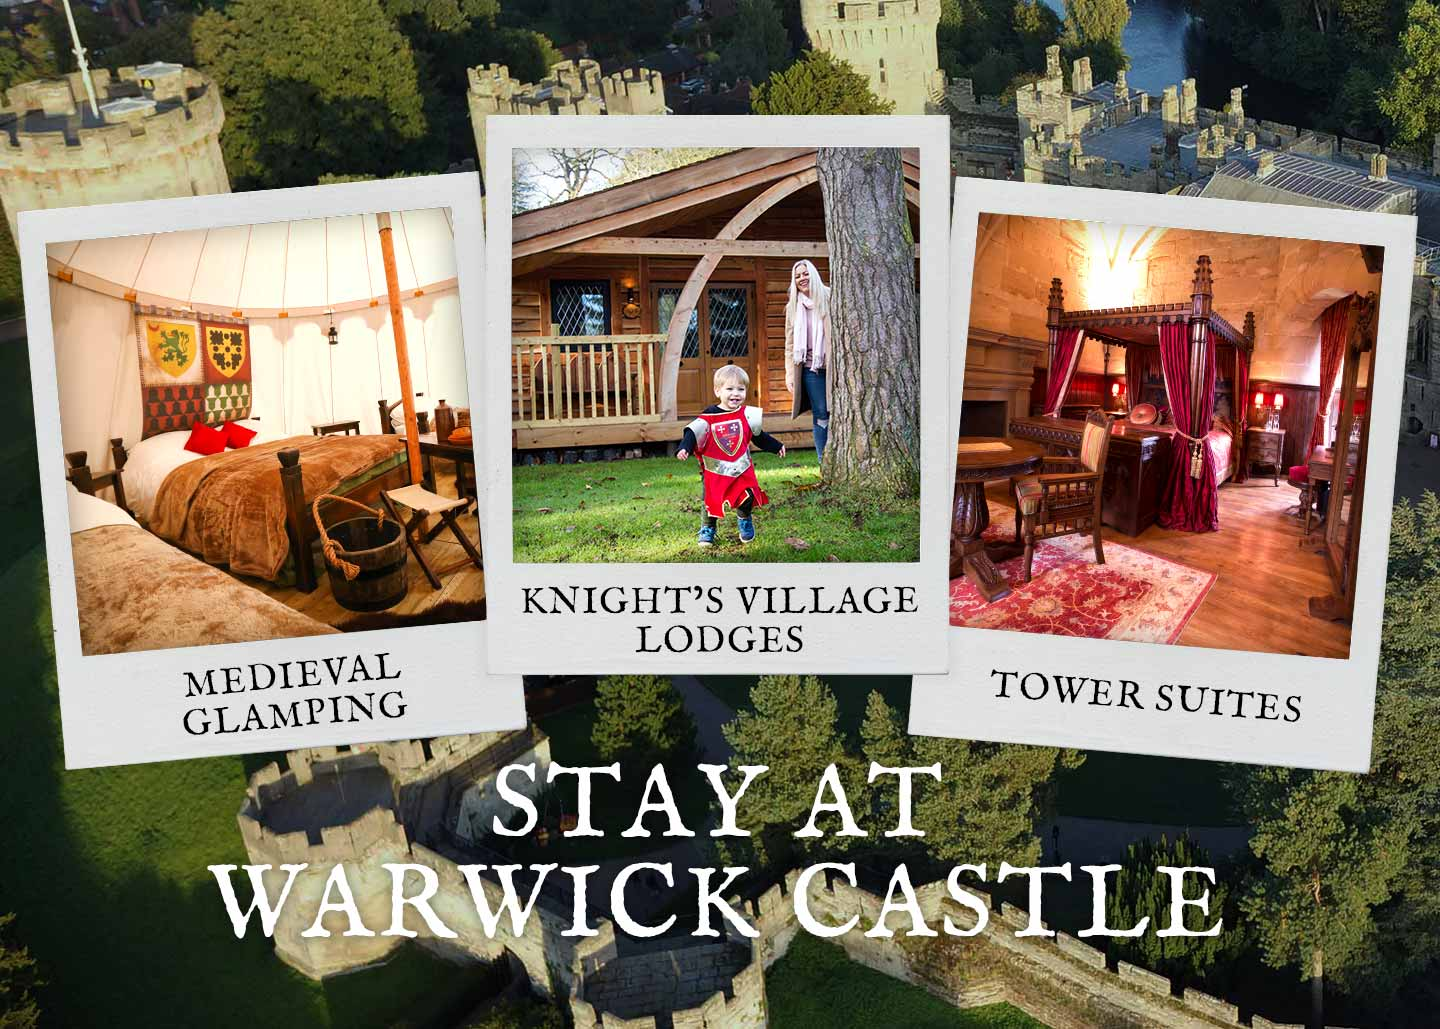 Bed and Breakfast at Warwick Castle